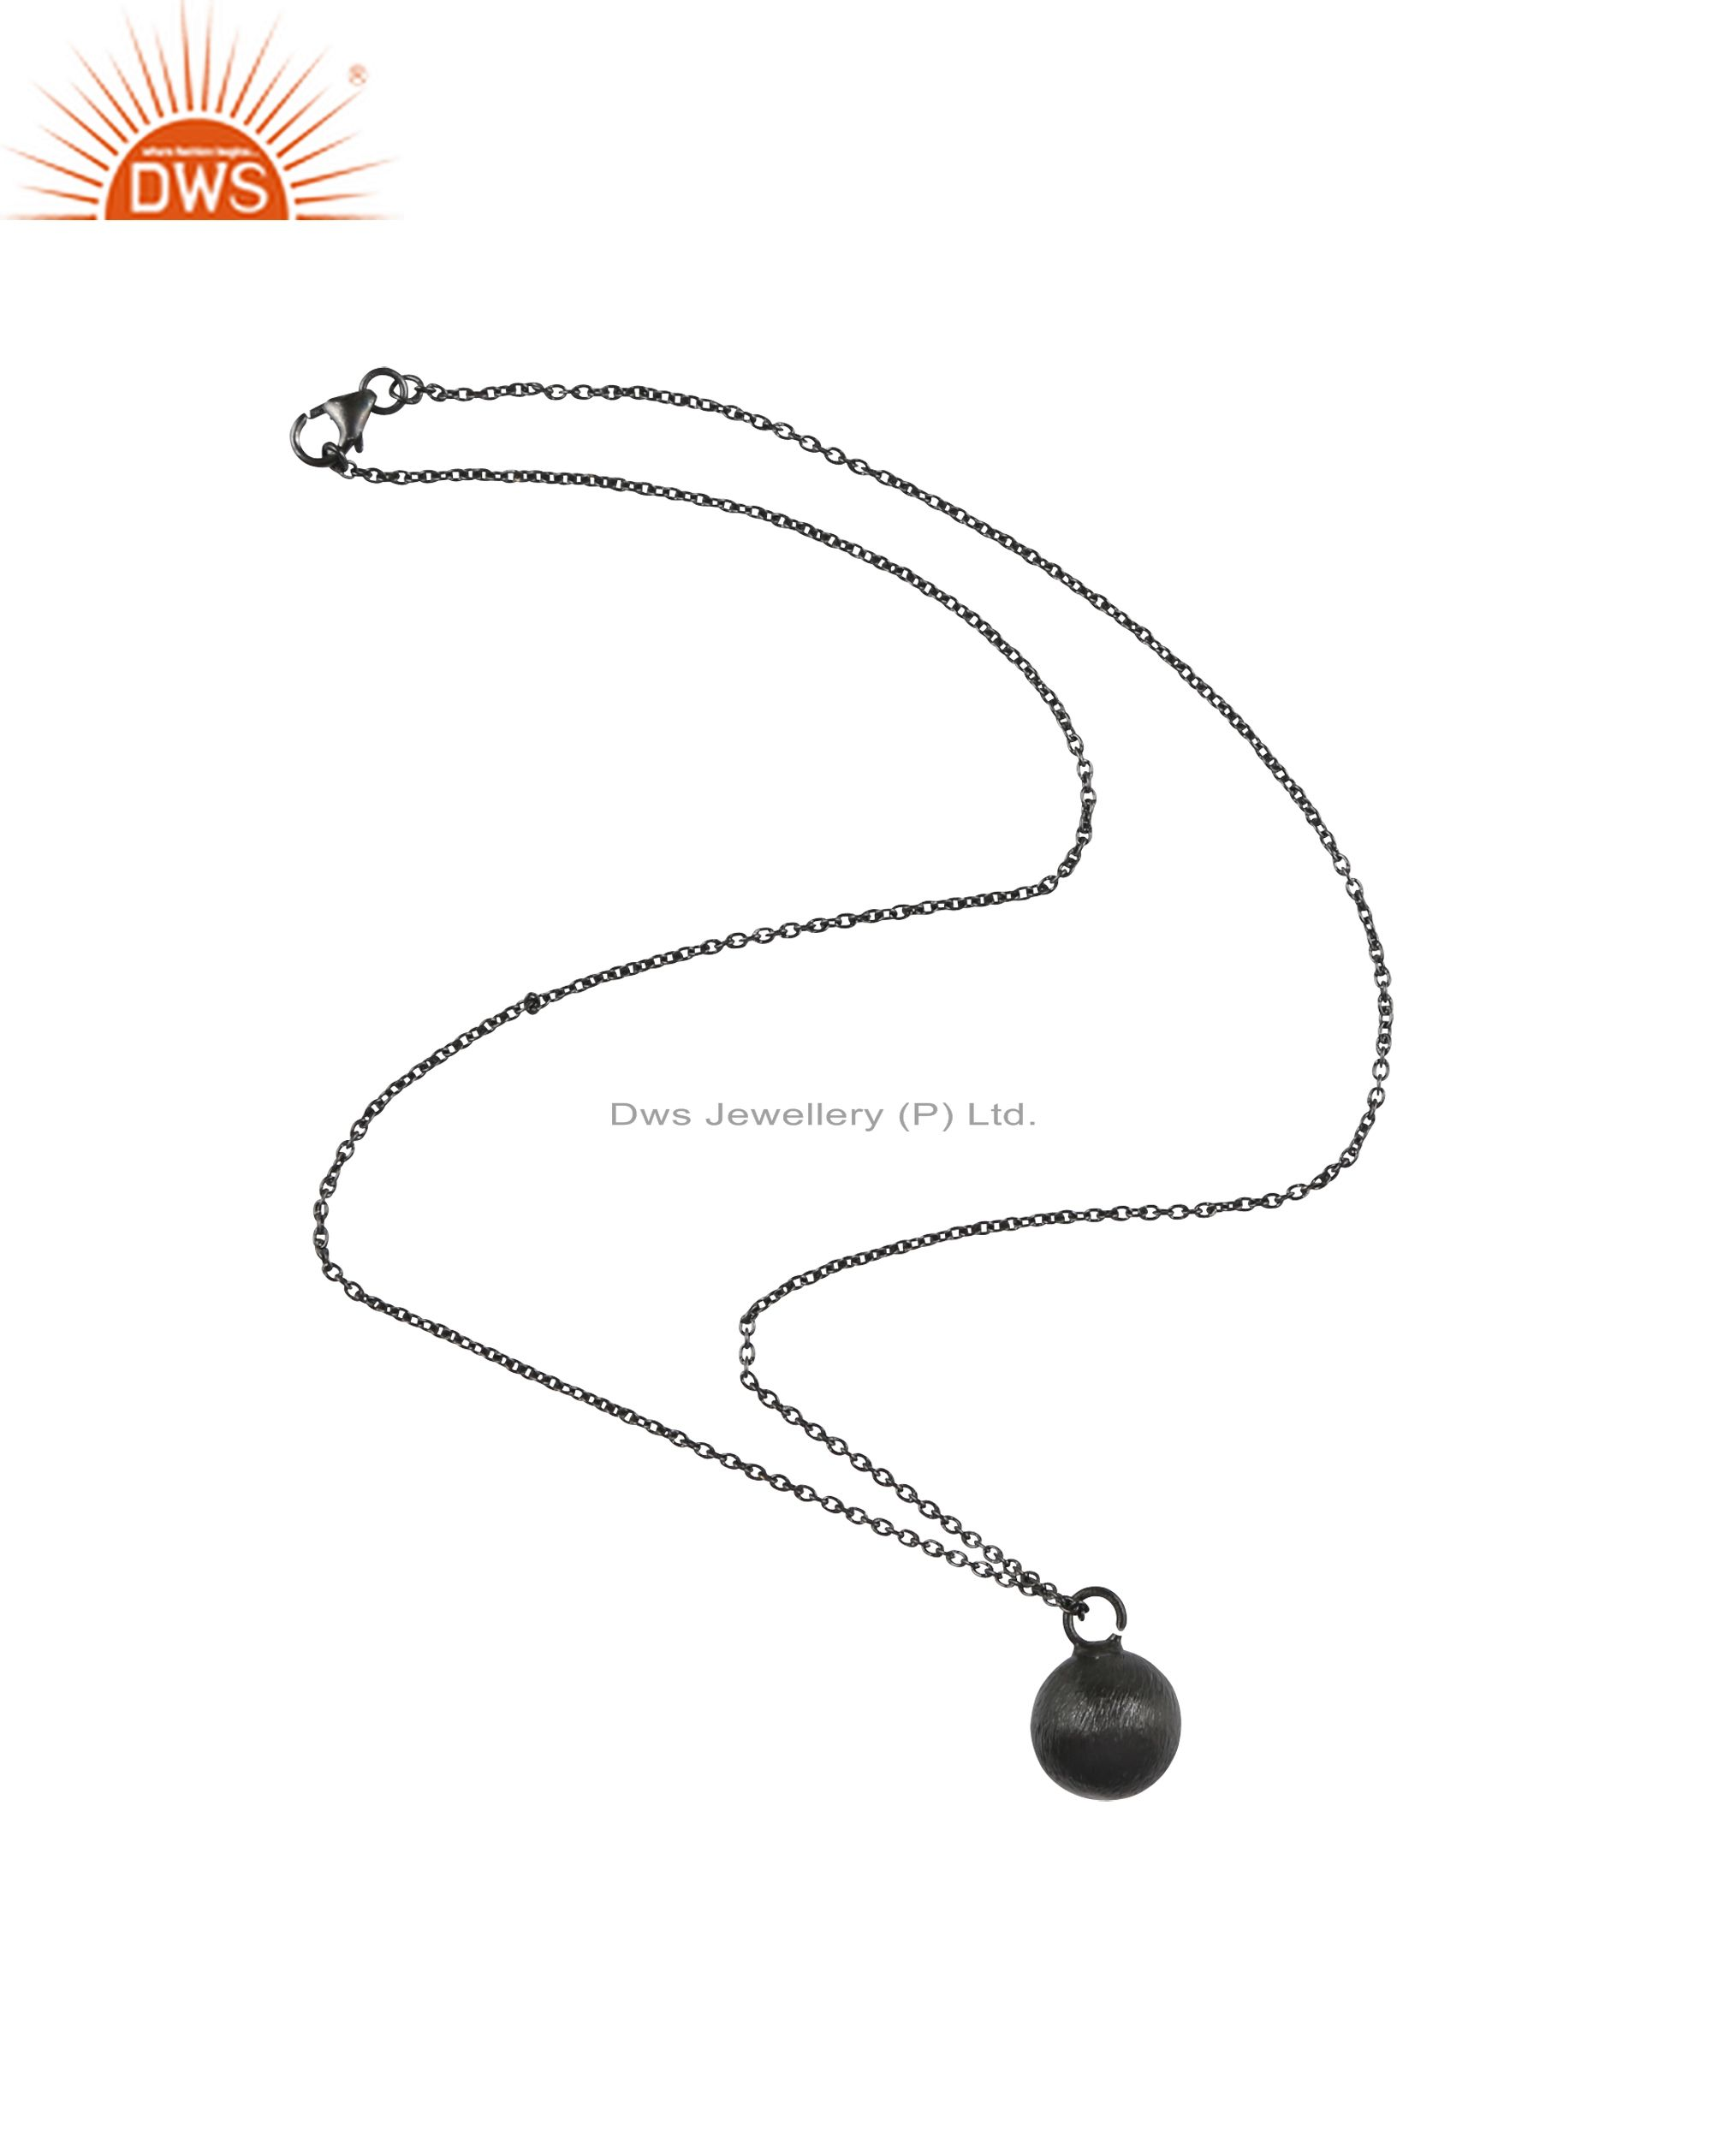 Black Rhodium Plated Sterling Silver Brushed Finish Pendant Link Chain Necklace